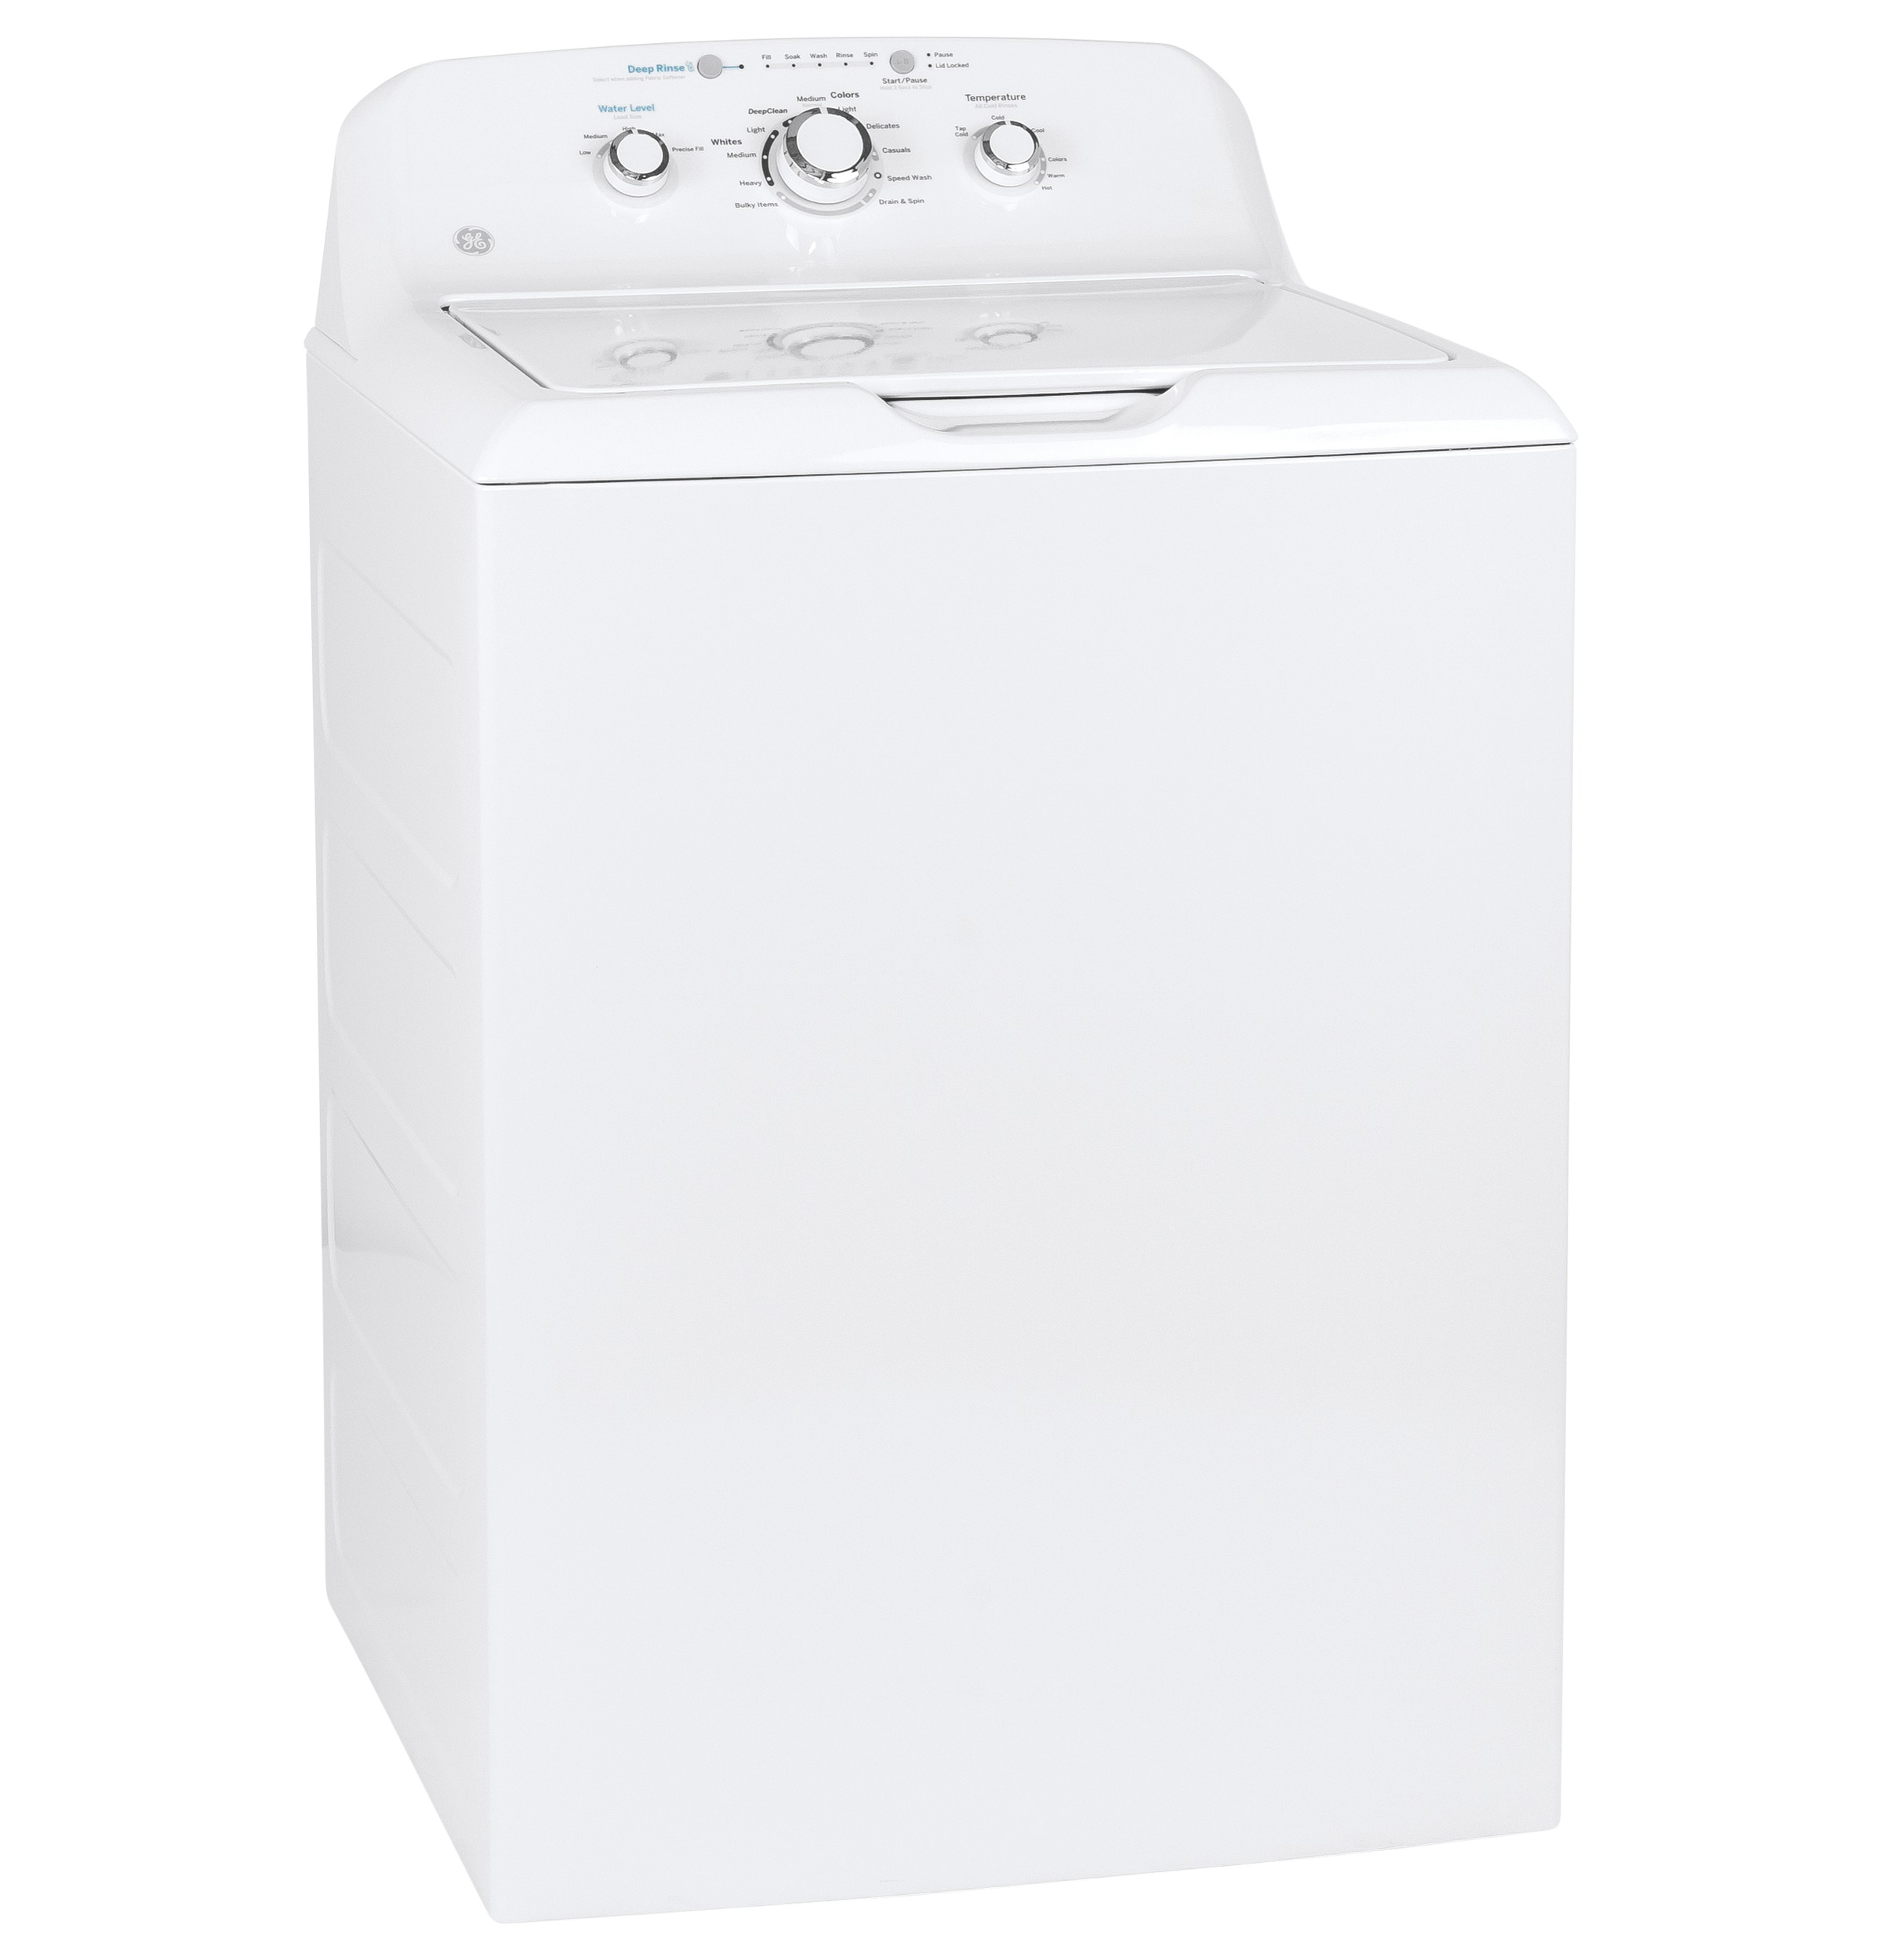 Model: GTW335ASNWW | GE® 4.2 cu. ft. Capacity Washer with Stainless Steel Basket